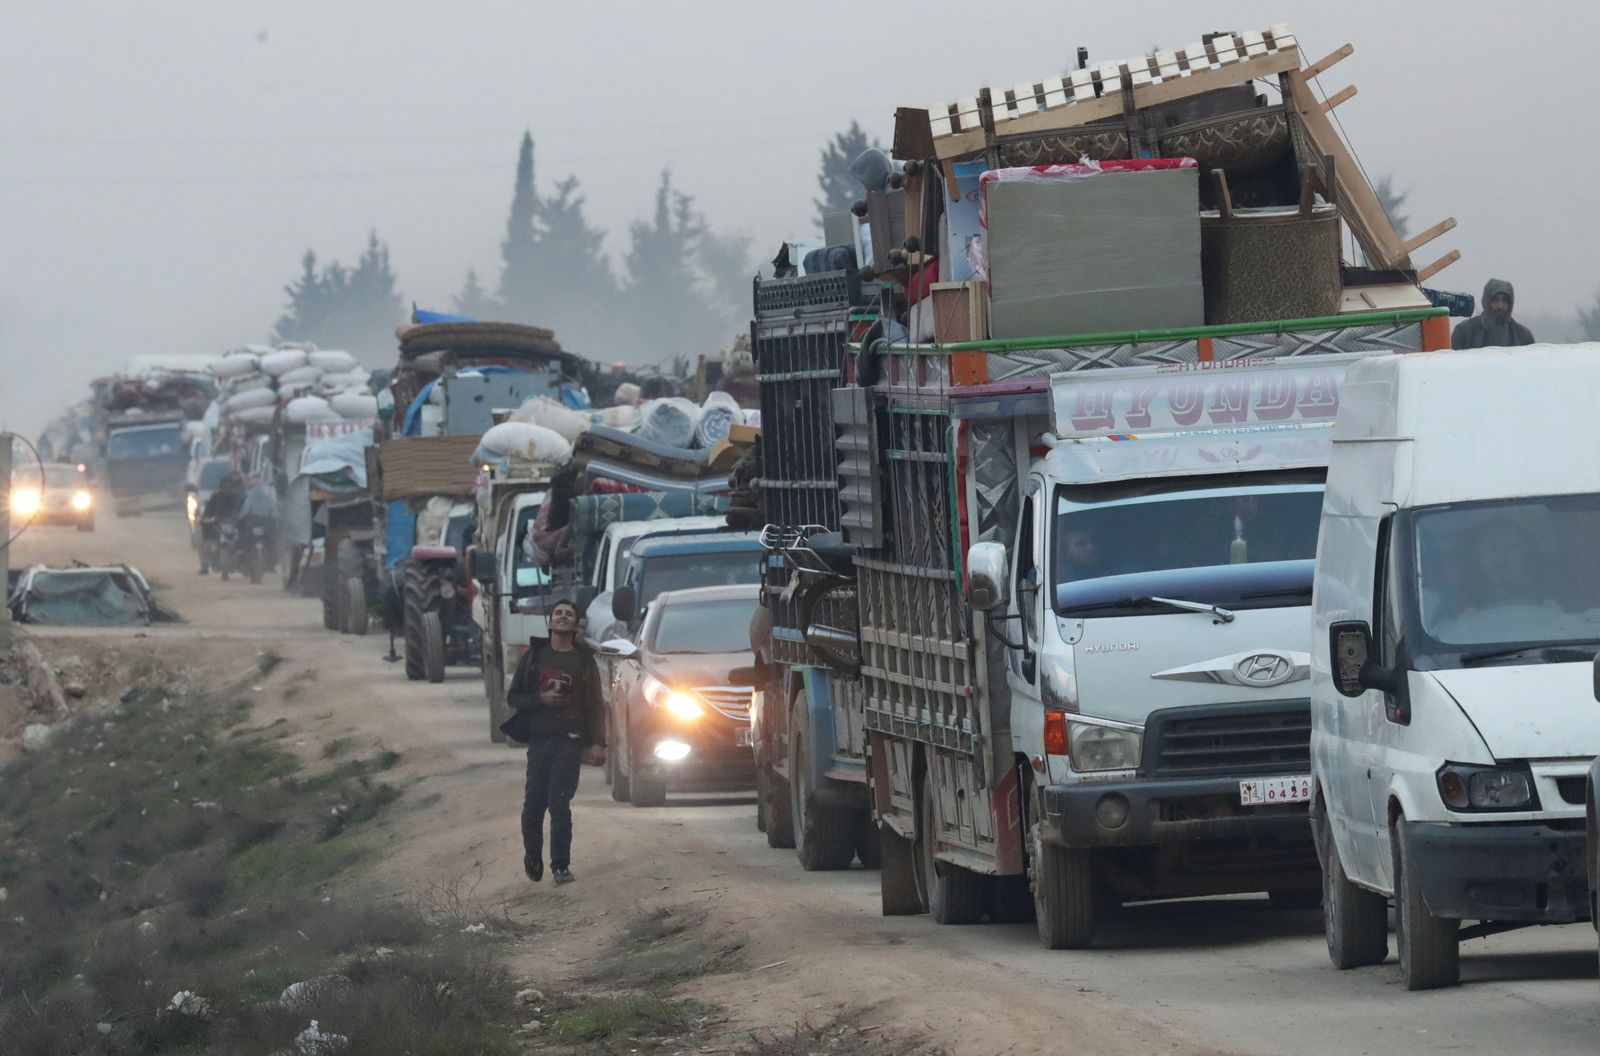 FILE PHOTO: A view of trucks carrying belongings of displaced Syrians, is pictured in the town of Sarmada in Idlib province